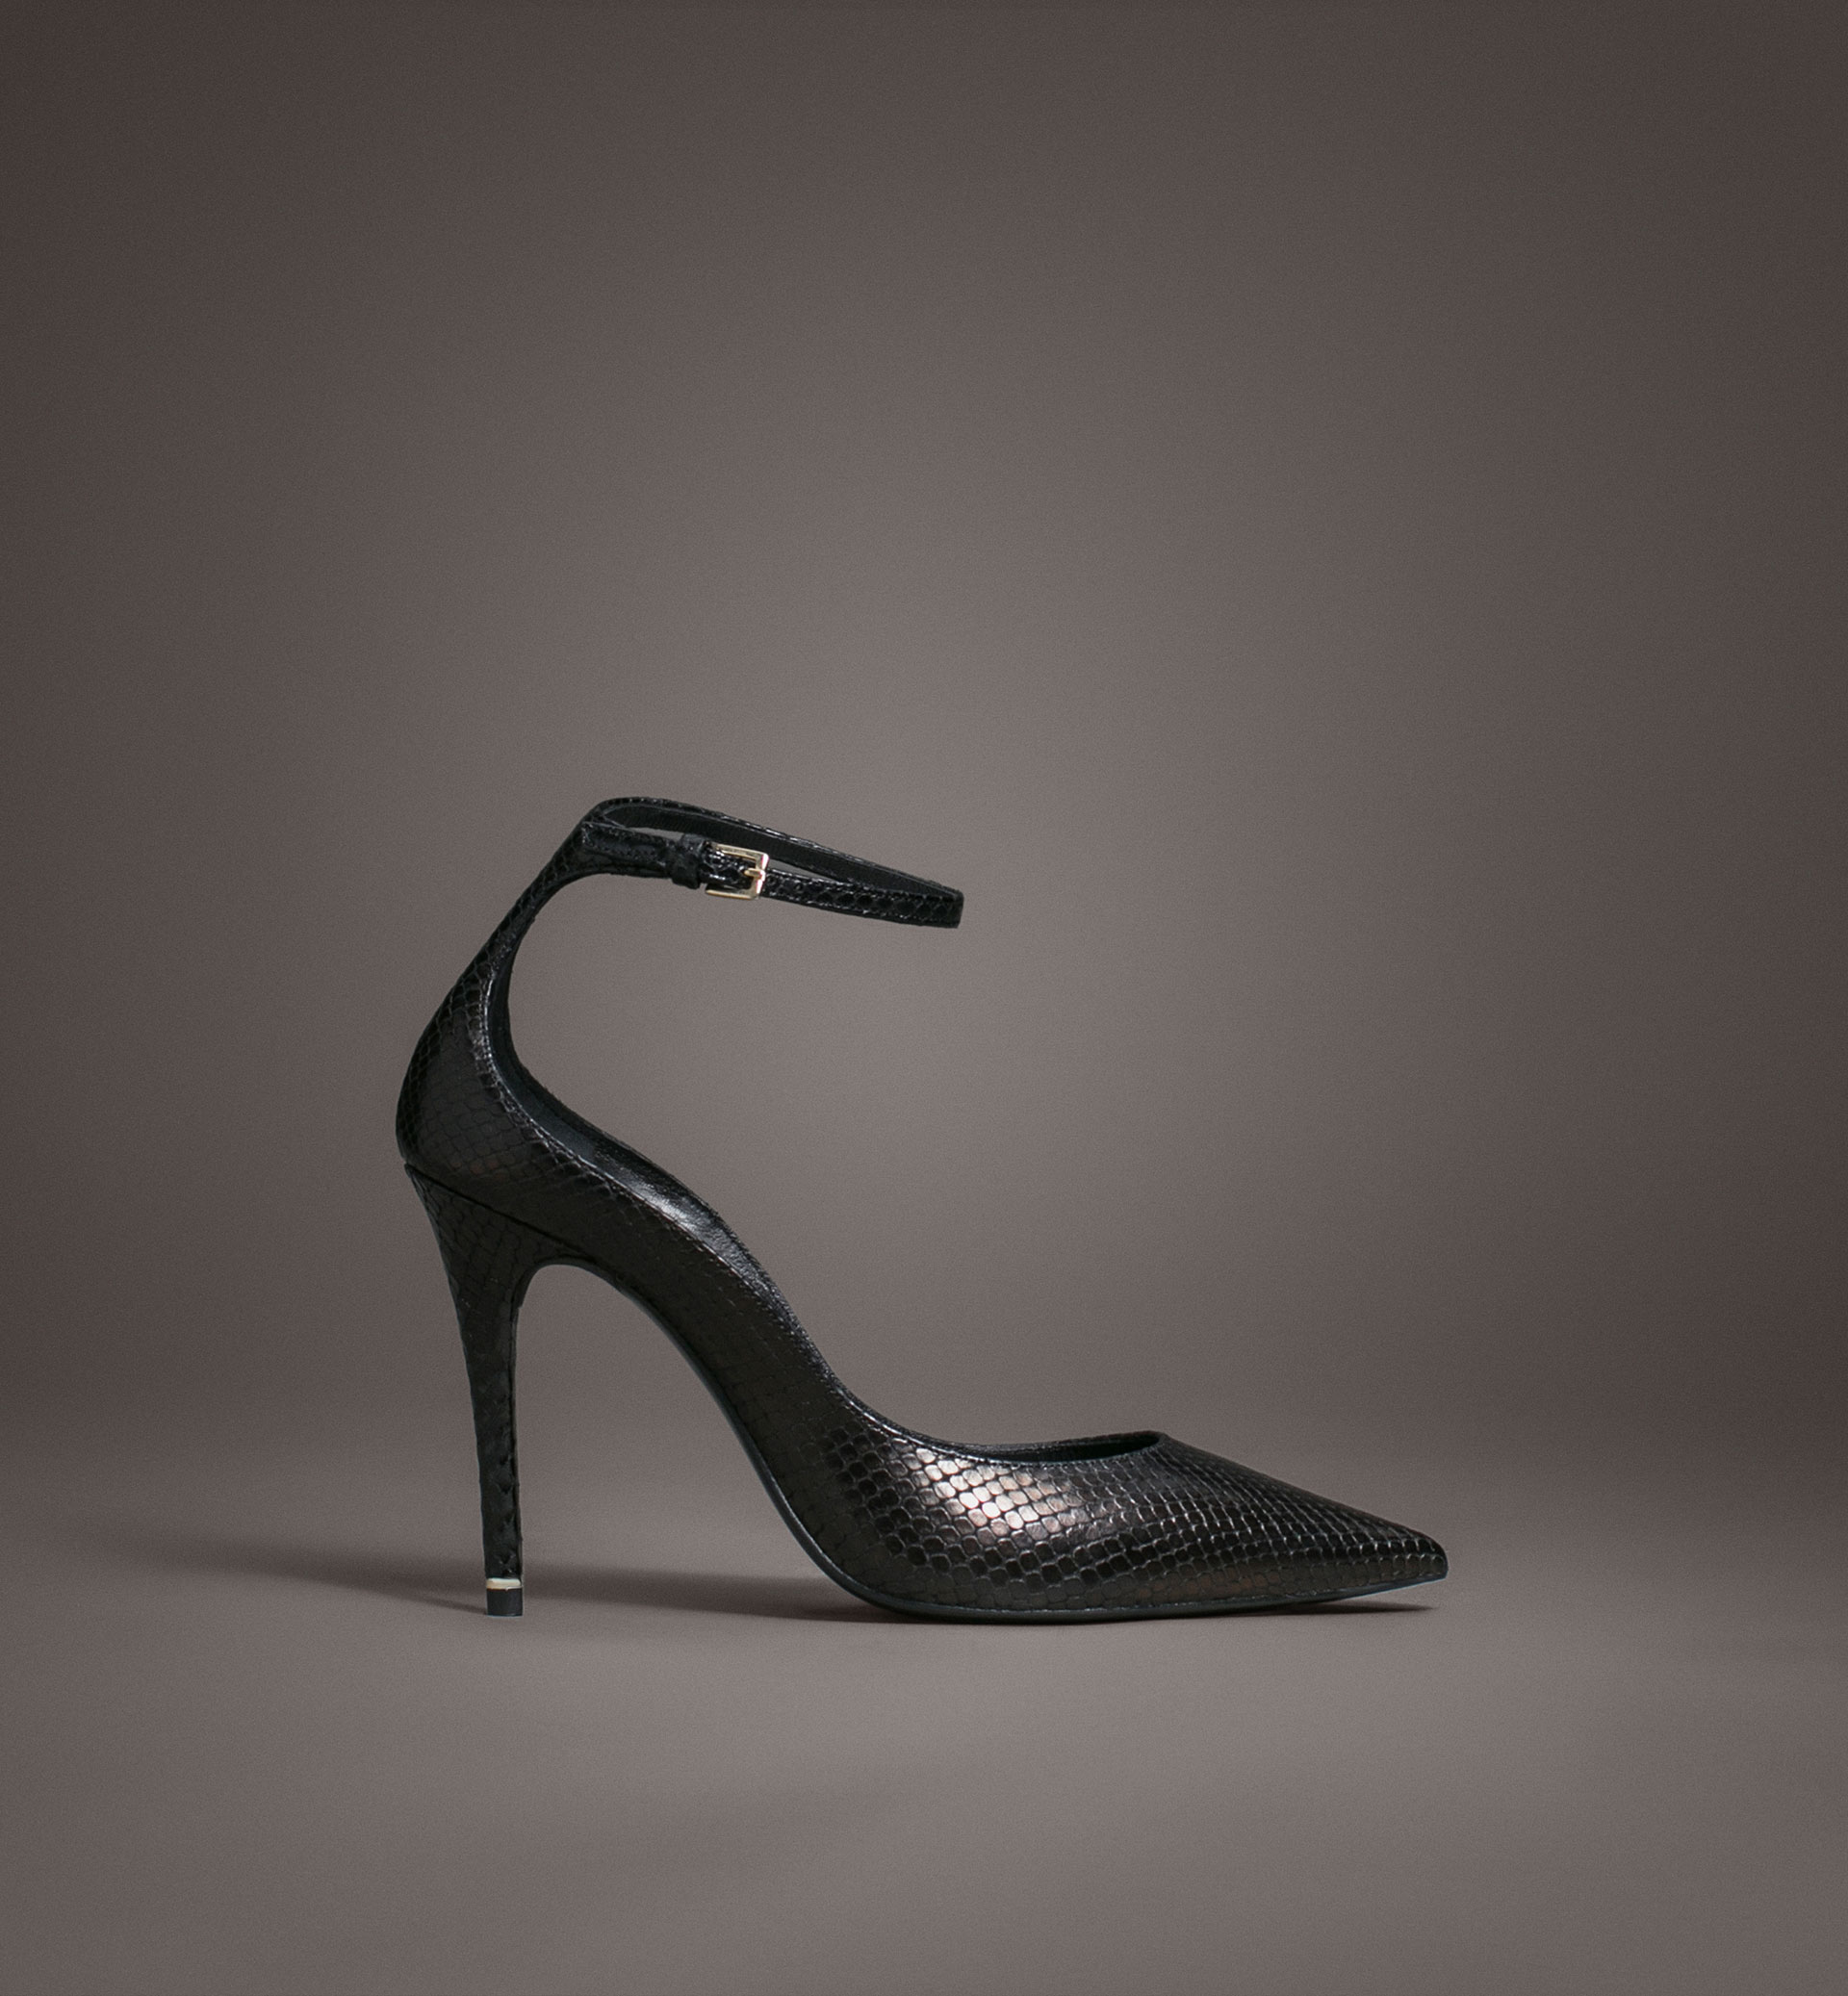 LIMITED EDITION ANKLE STRAP HIGH HEEL SHOES